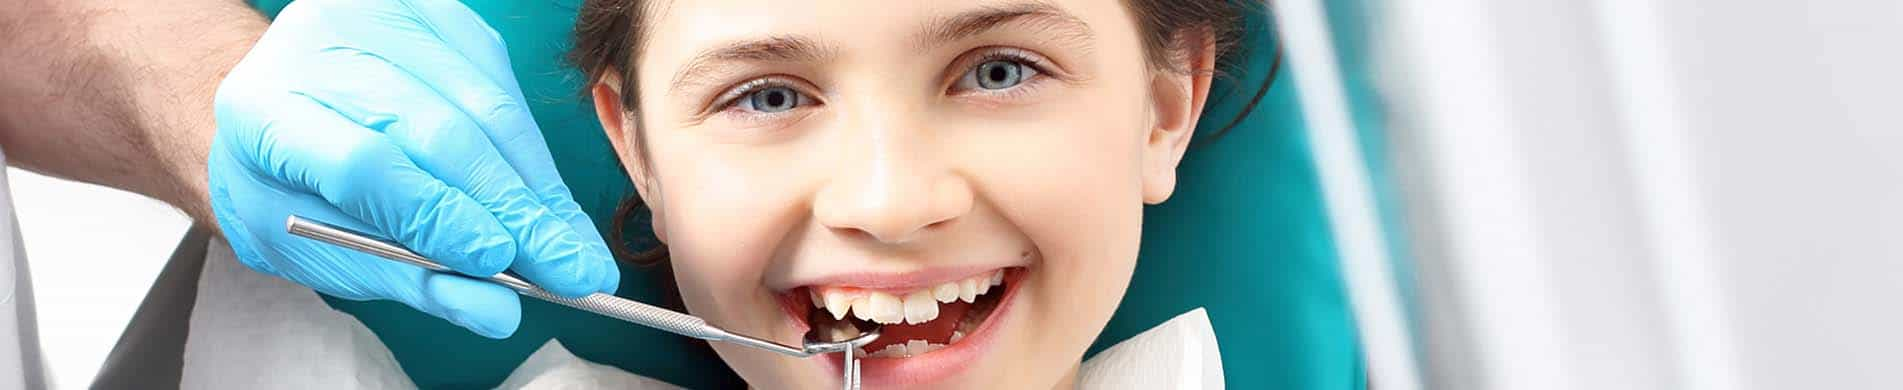 burwood childrens dentist